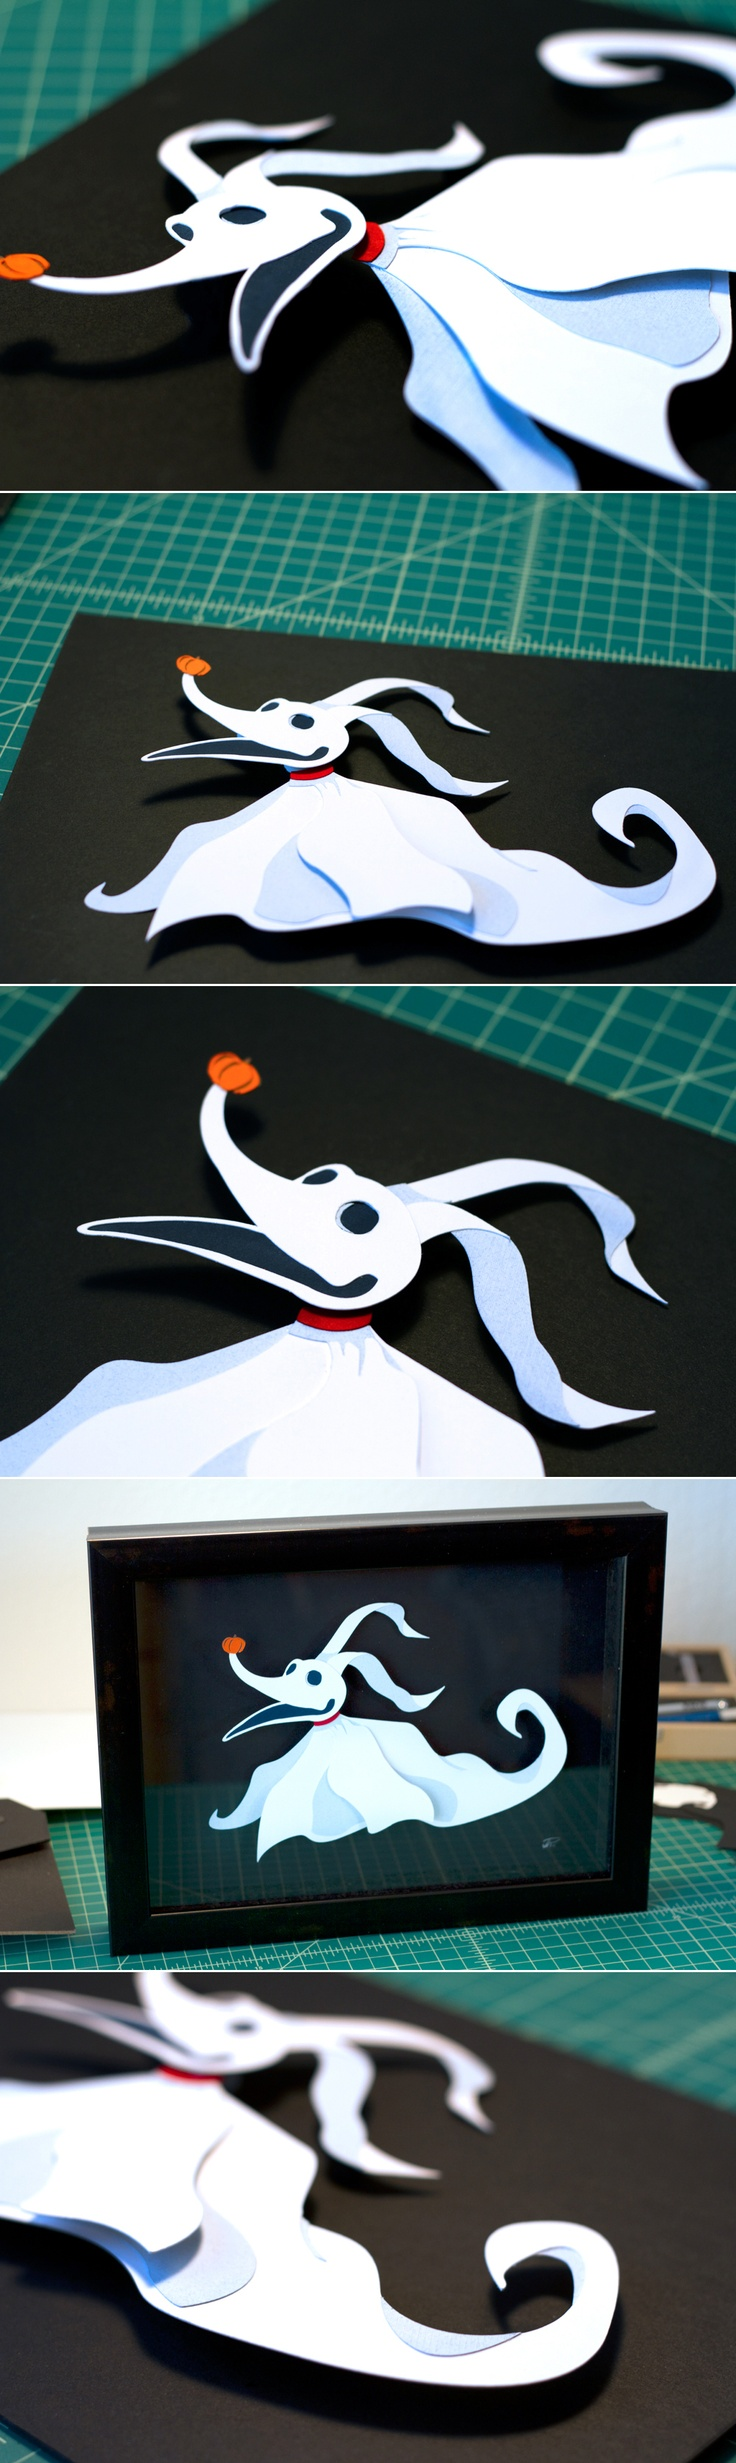 Zero - Nightmare Before Christmas 8.5x11 handcut 3d papercraft - avail on my etsy as well - yay for ghost doggies!! https://www.etsy.com/listing/120731487/zero-nightmare-before-christmas-85x11